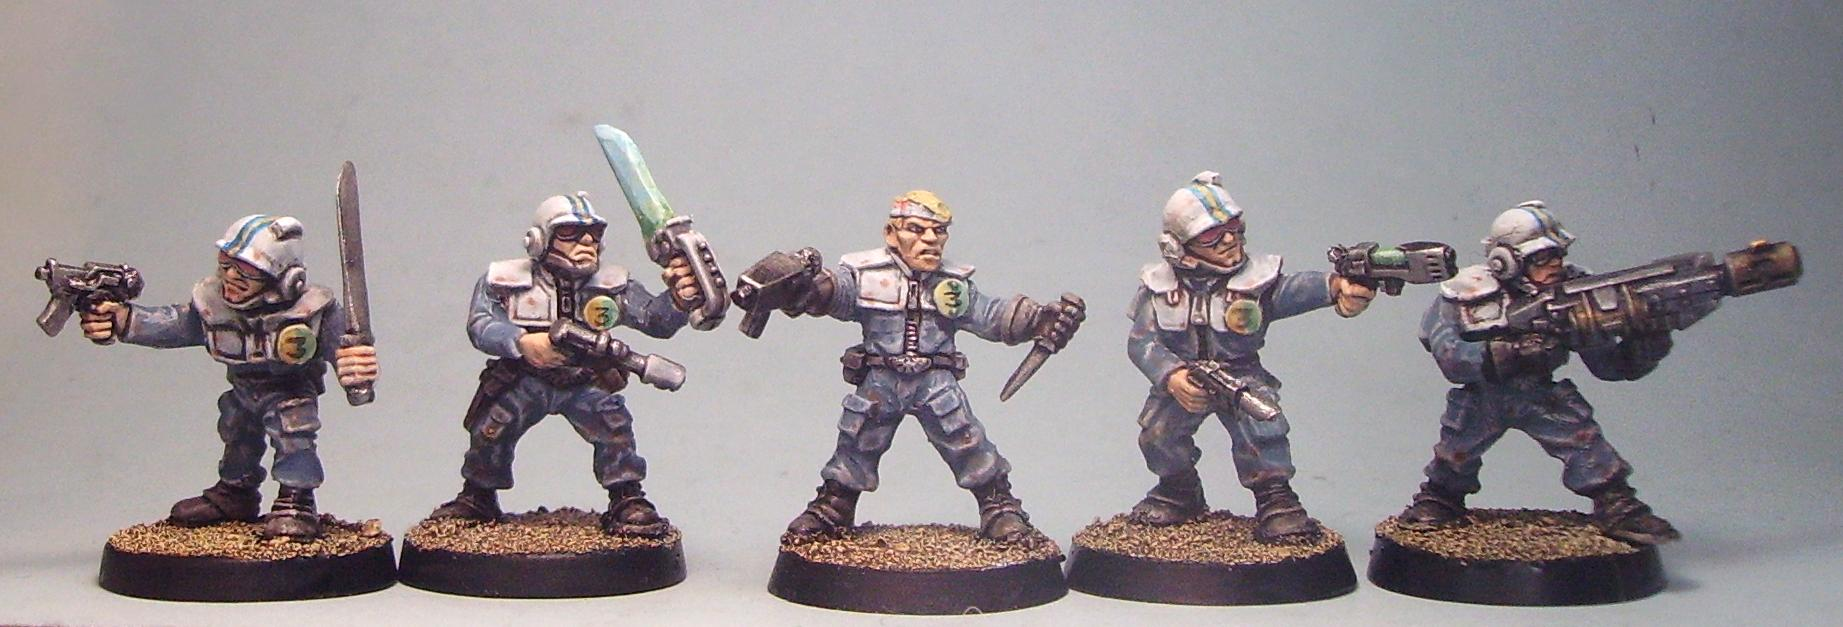 Imperial Guard, Out Of Production, Rogue Trader